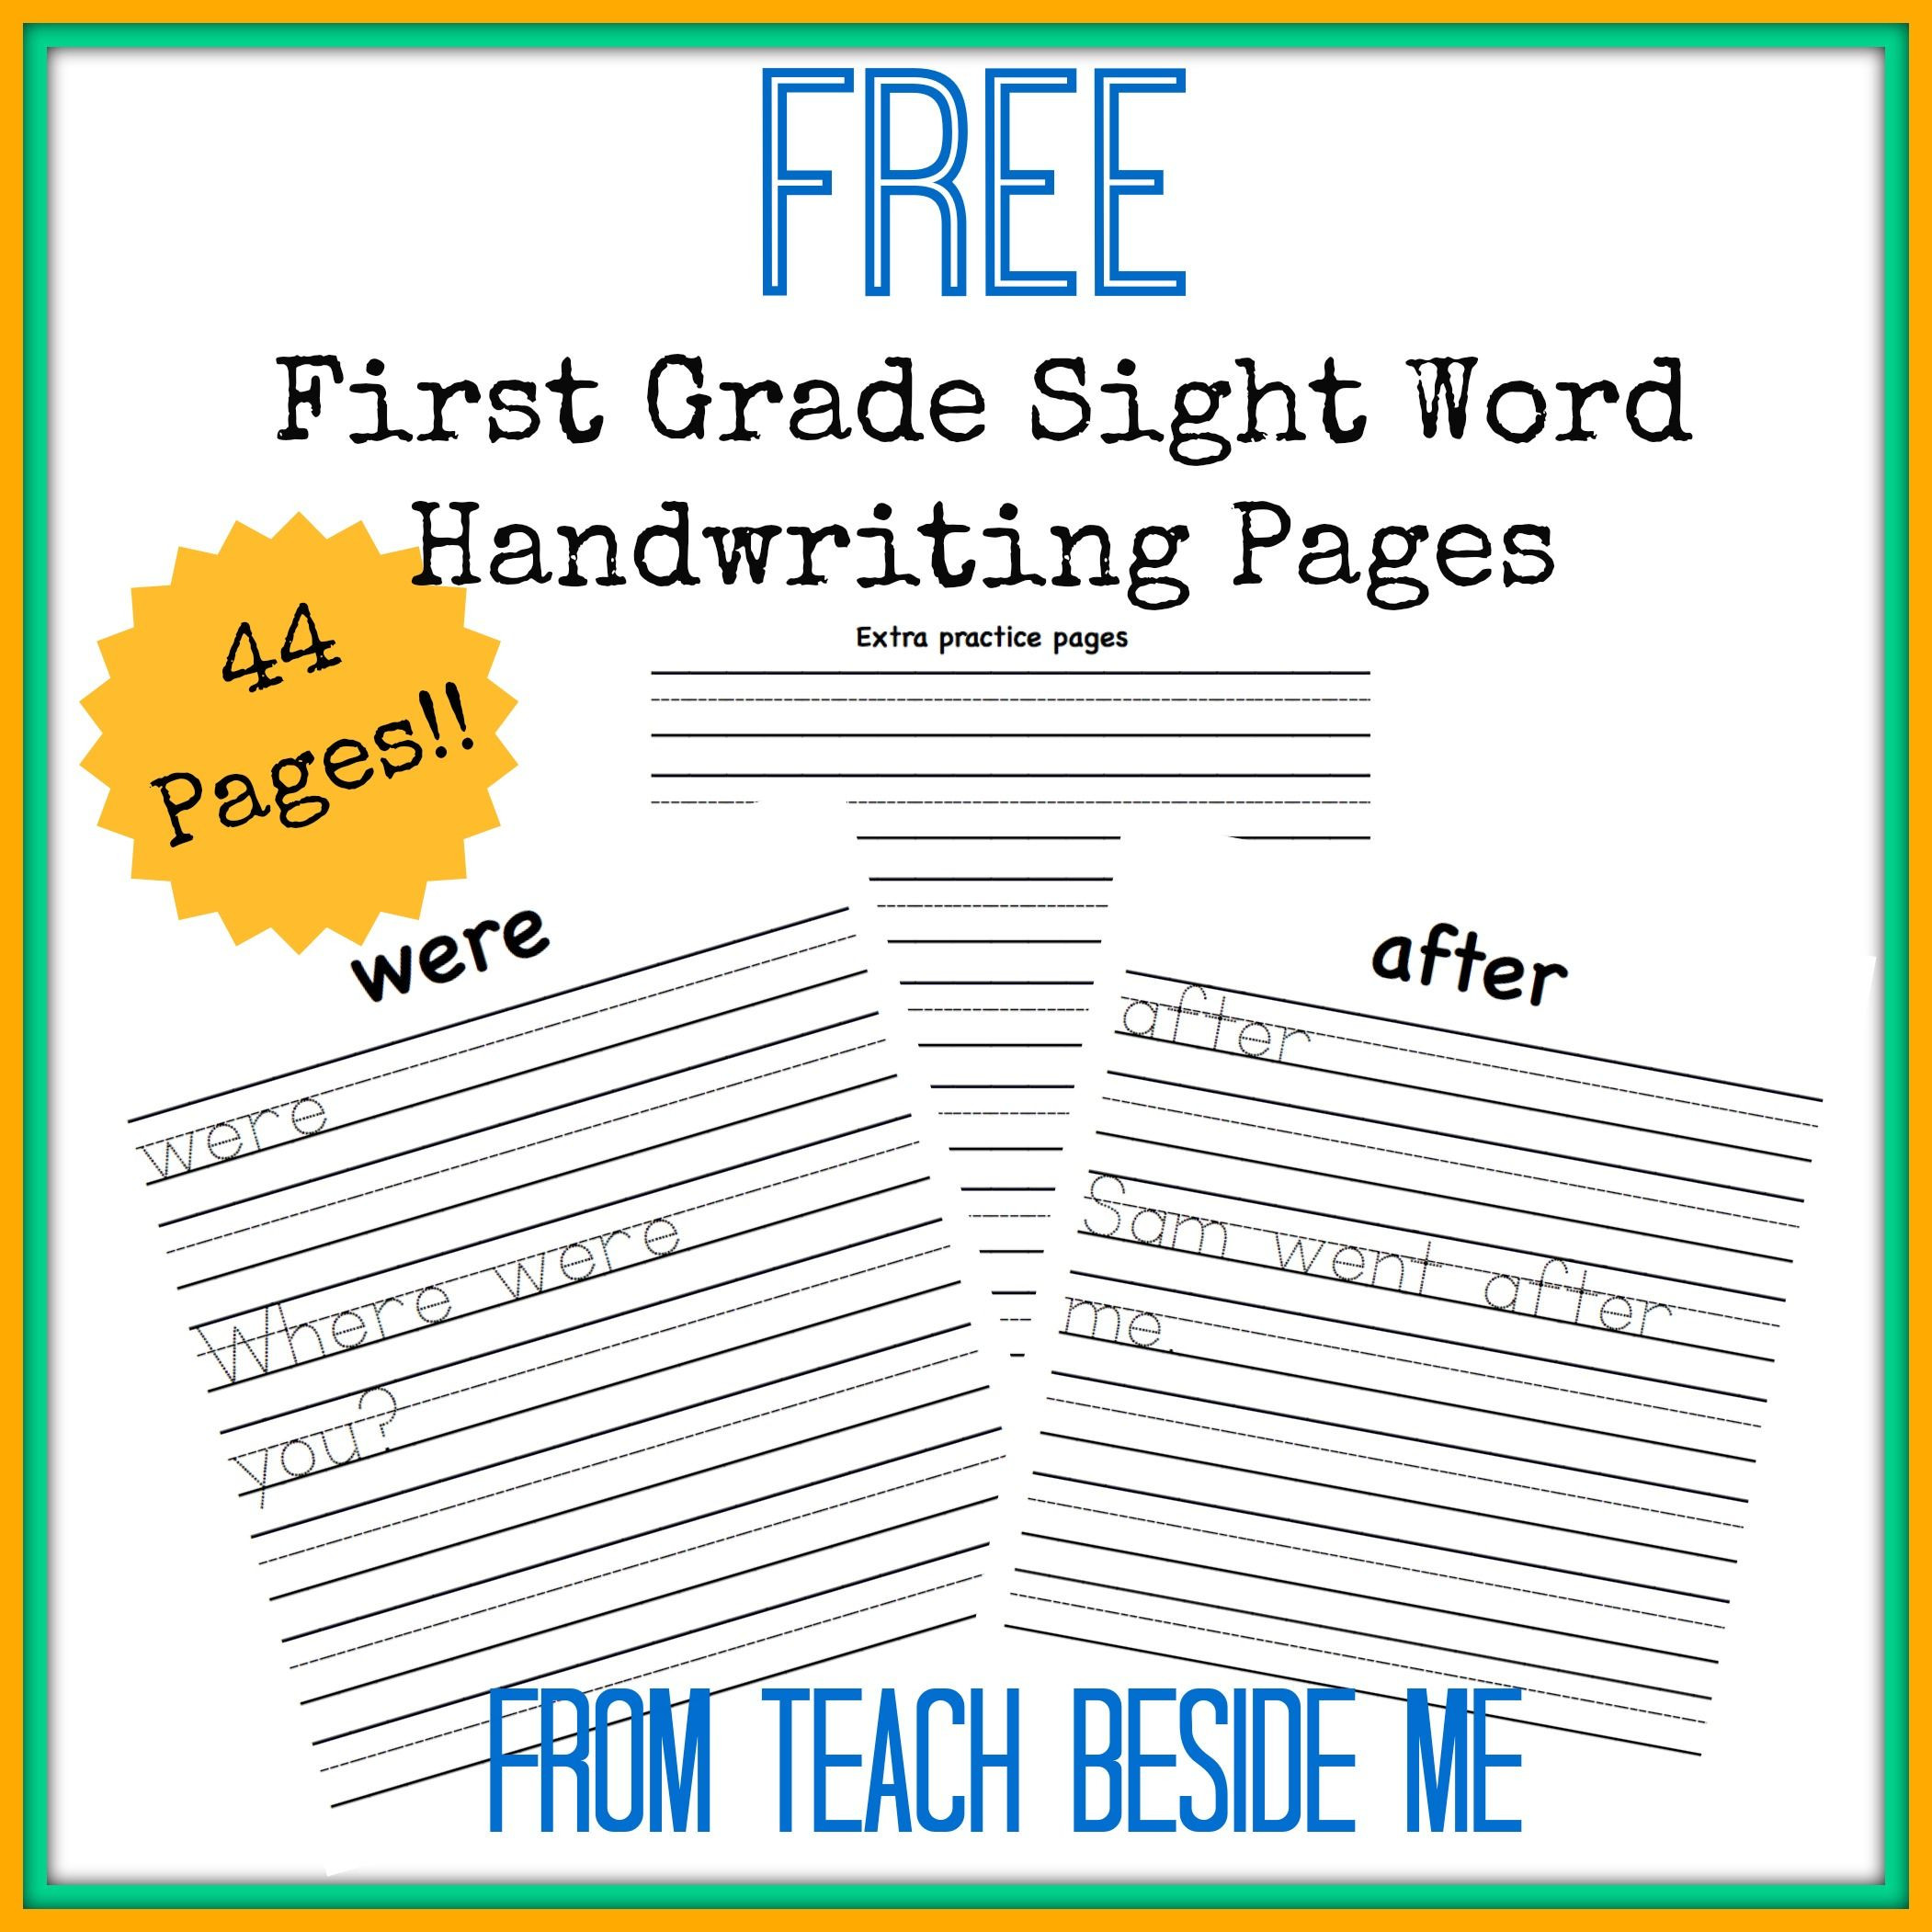 1st Grade Sight Word Worksheets First Grade Sight Word Handwriting